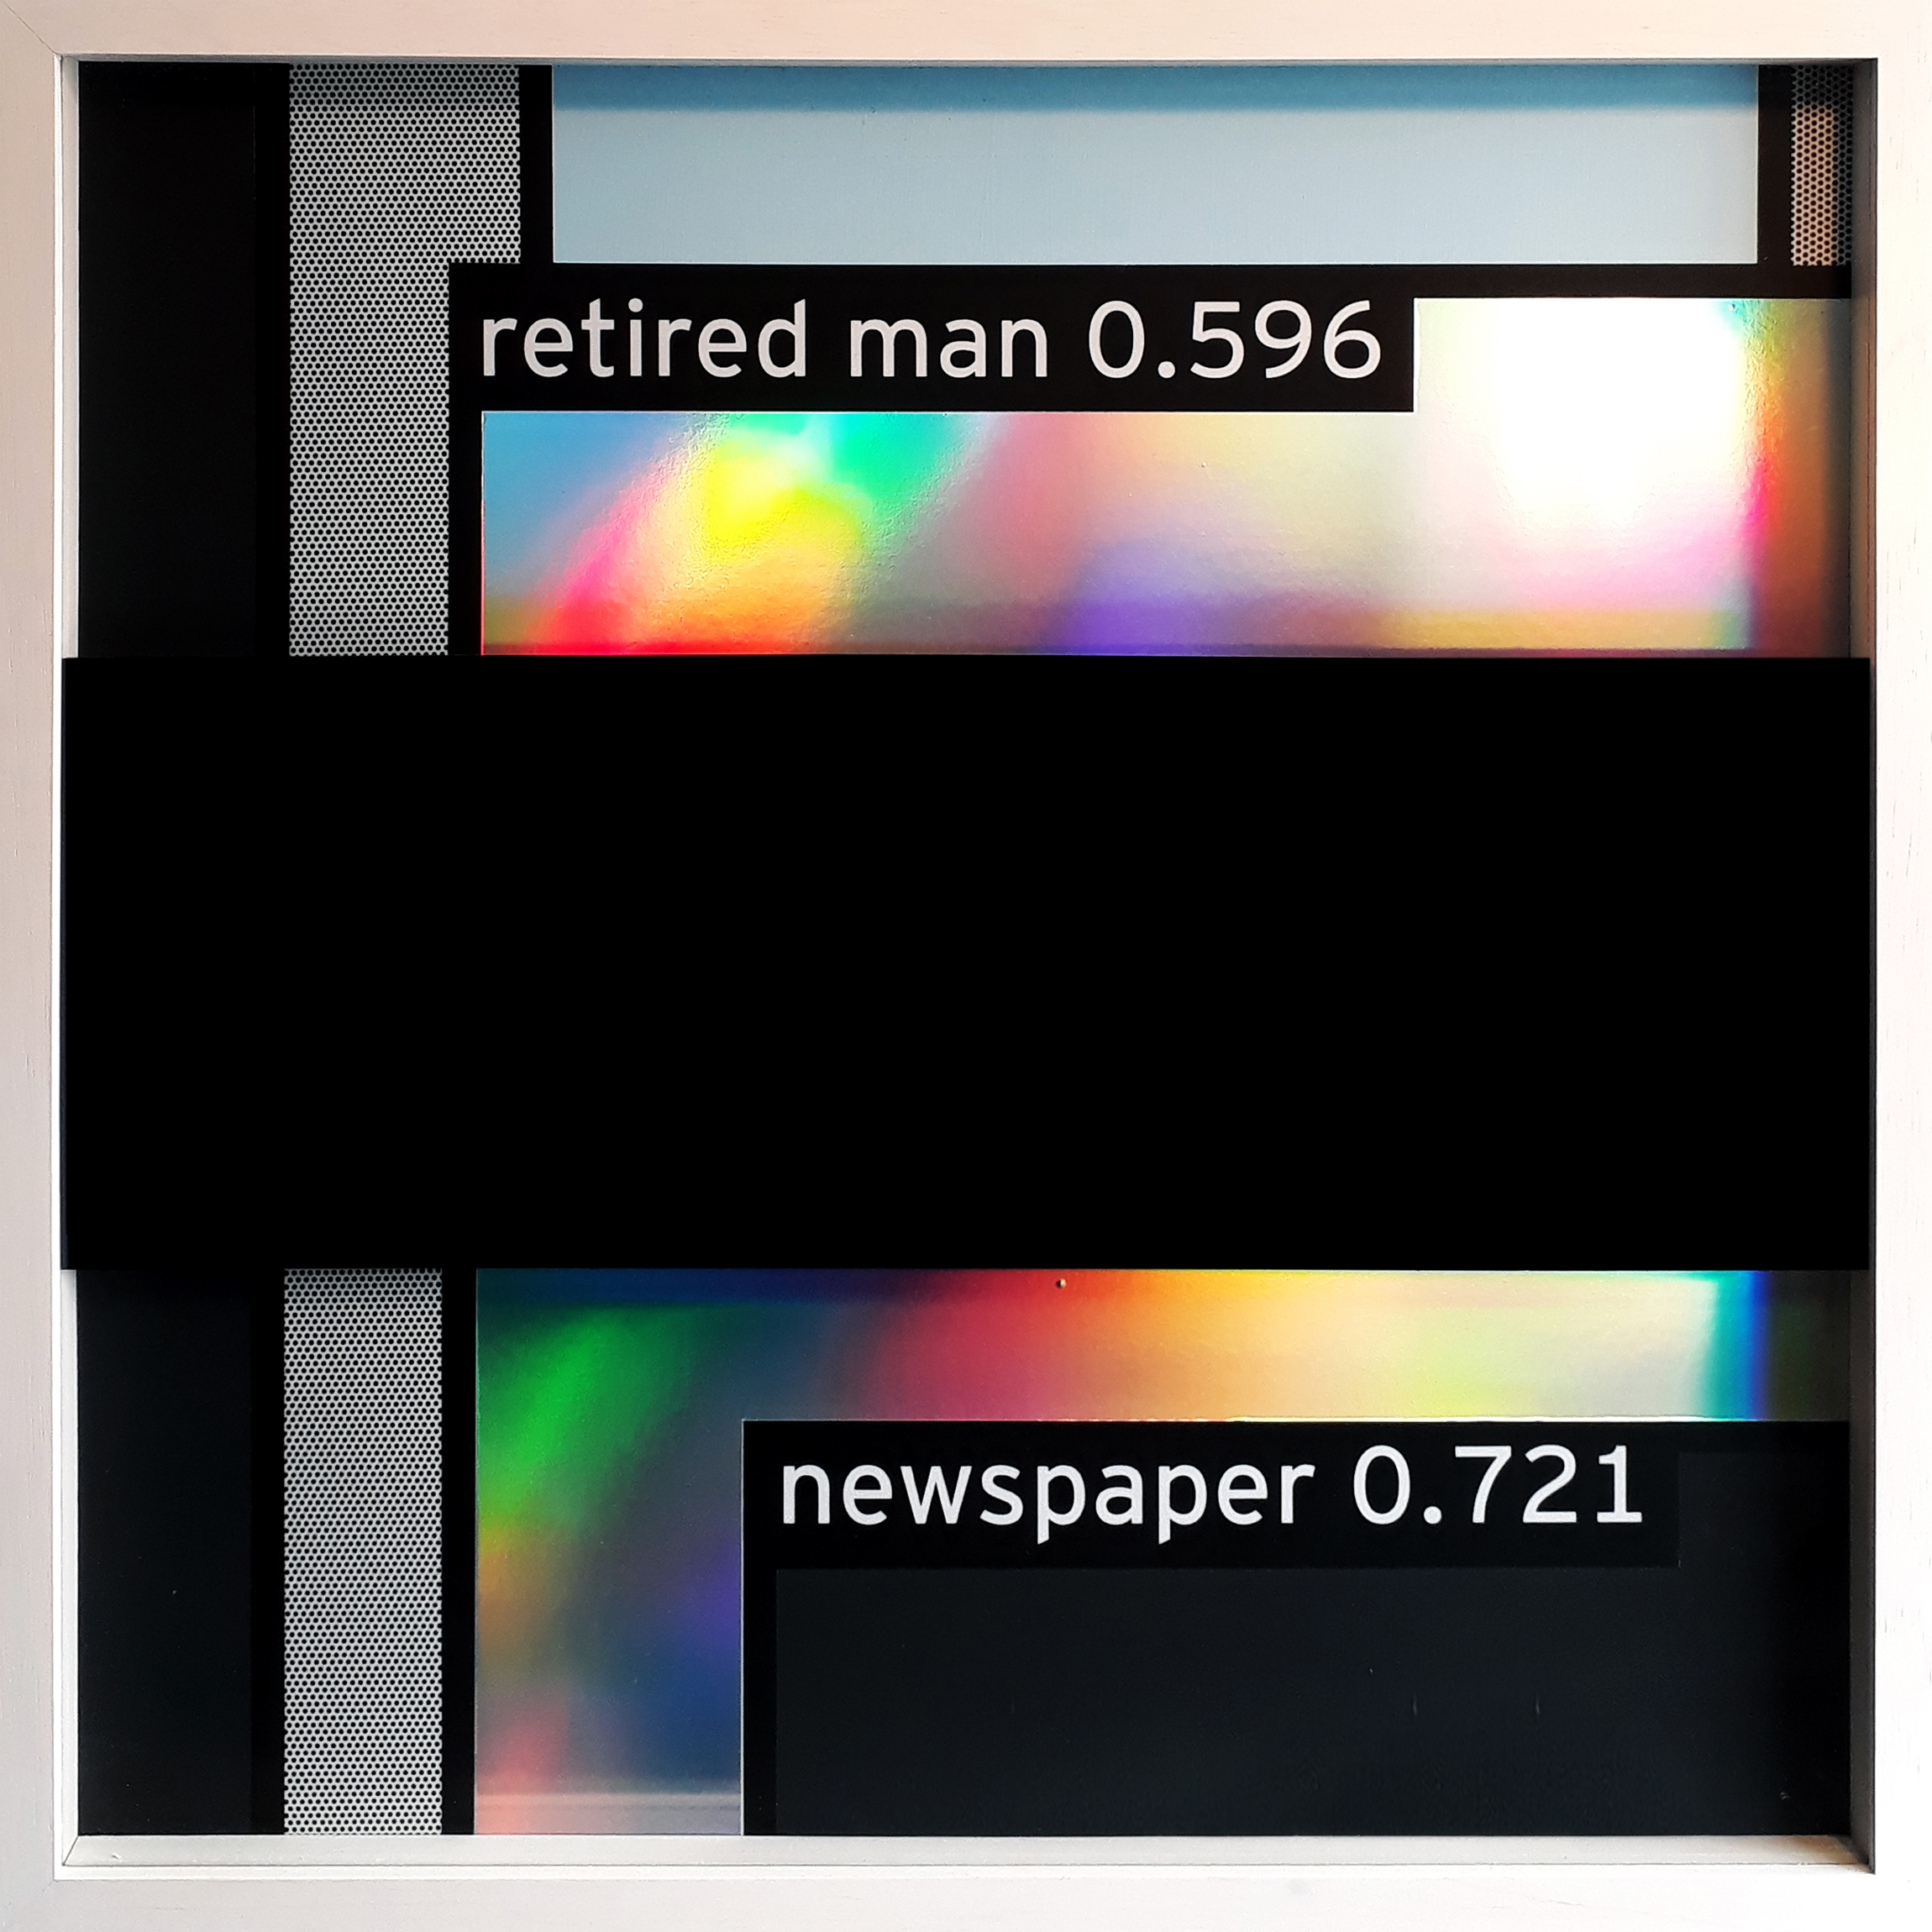 RETIRED MAN 0.596